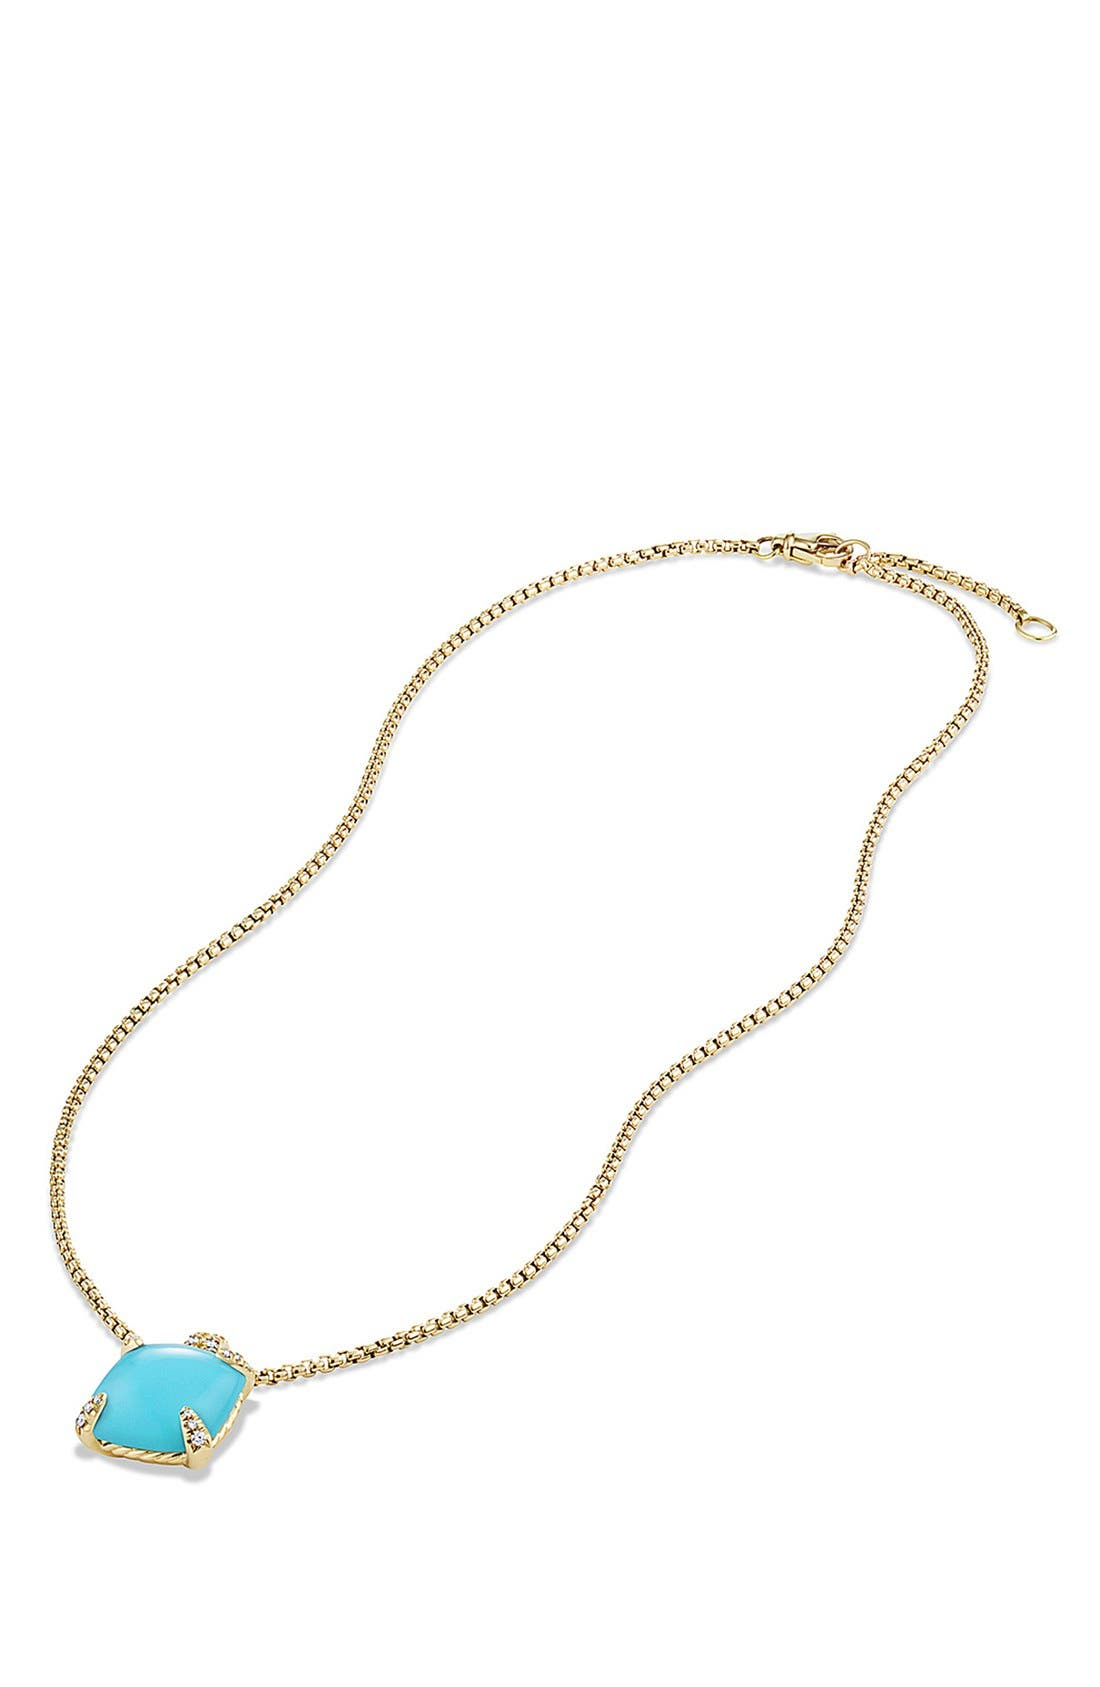 DAVID YURMAN, 'Châtelaine' Pendant Necklace with Diamonds in 18K Gold, Alternate thumbnail 3, color, TURQUOISE